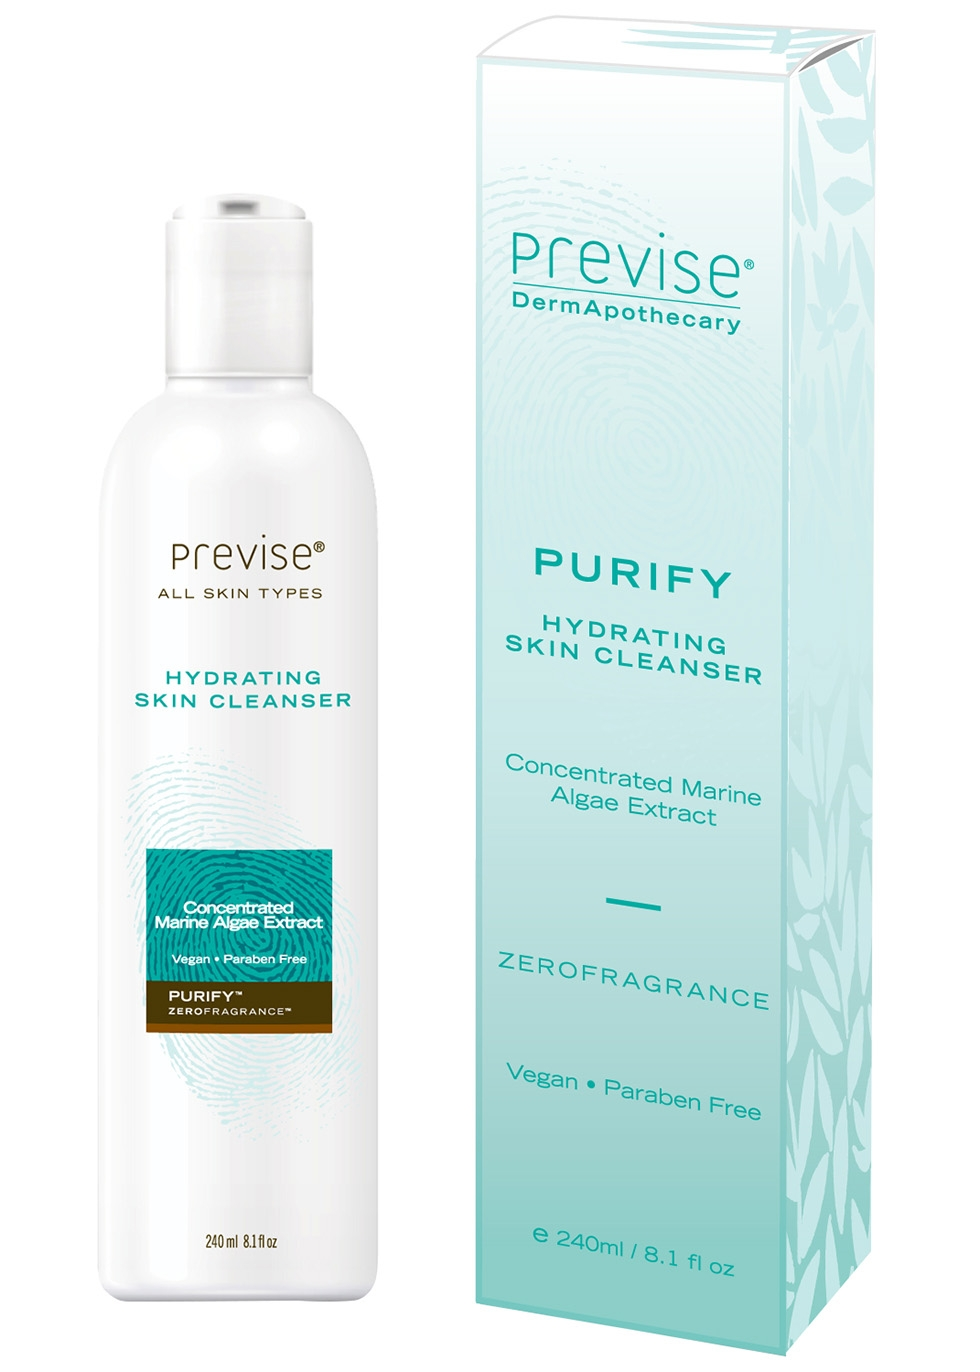 Previse Purify Hydrating Marine Cleanser, £32